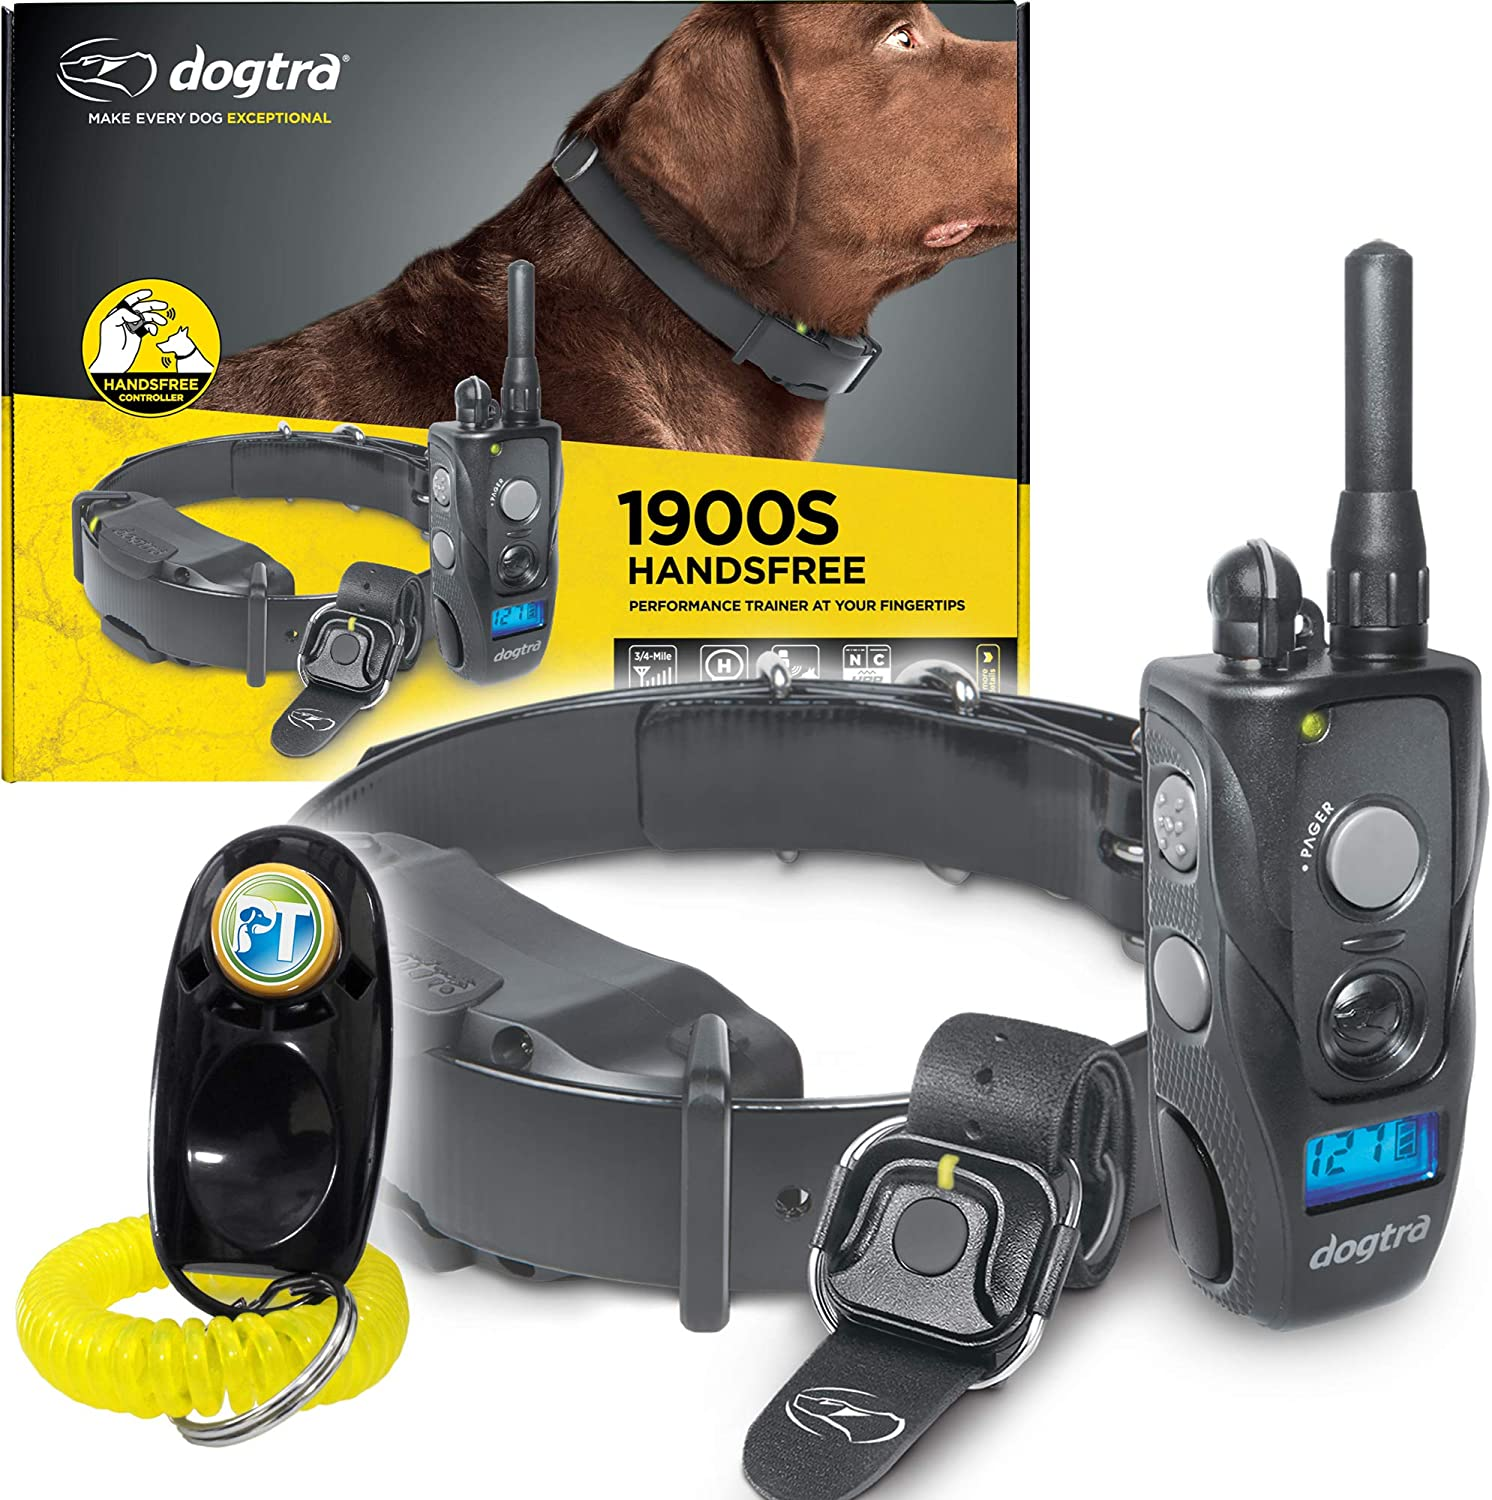 Dogtra 1900S HANDSFREE Remote Training Collar – 3 4 Mile Range, Waterproof, Rechargeable, Shock, Vibration, Hands Free Remote Controller – Includes PetsTEK Dog Training Clicker